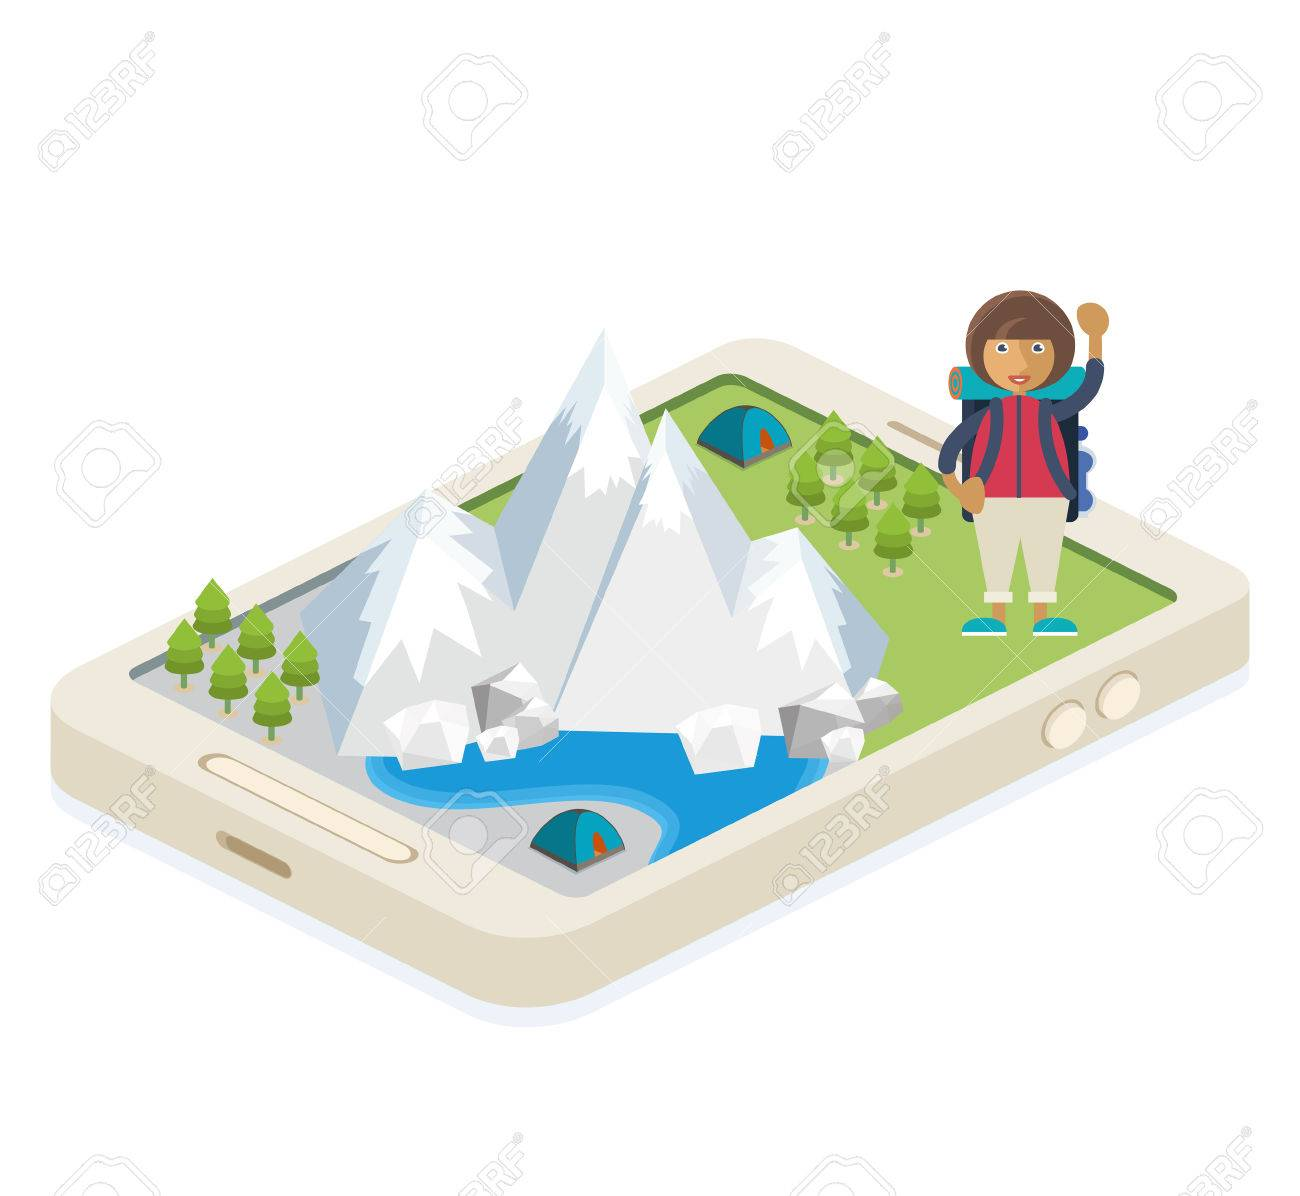 A mobile app with a map of traveling and camping Stock Vector - 48104804